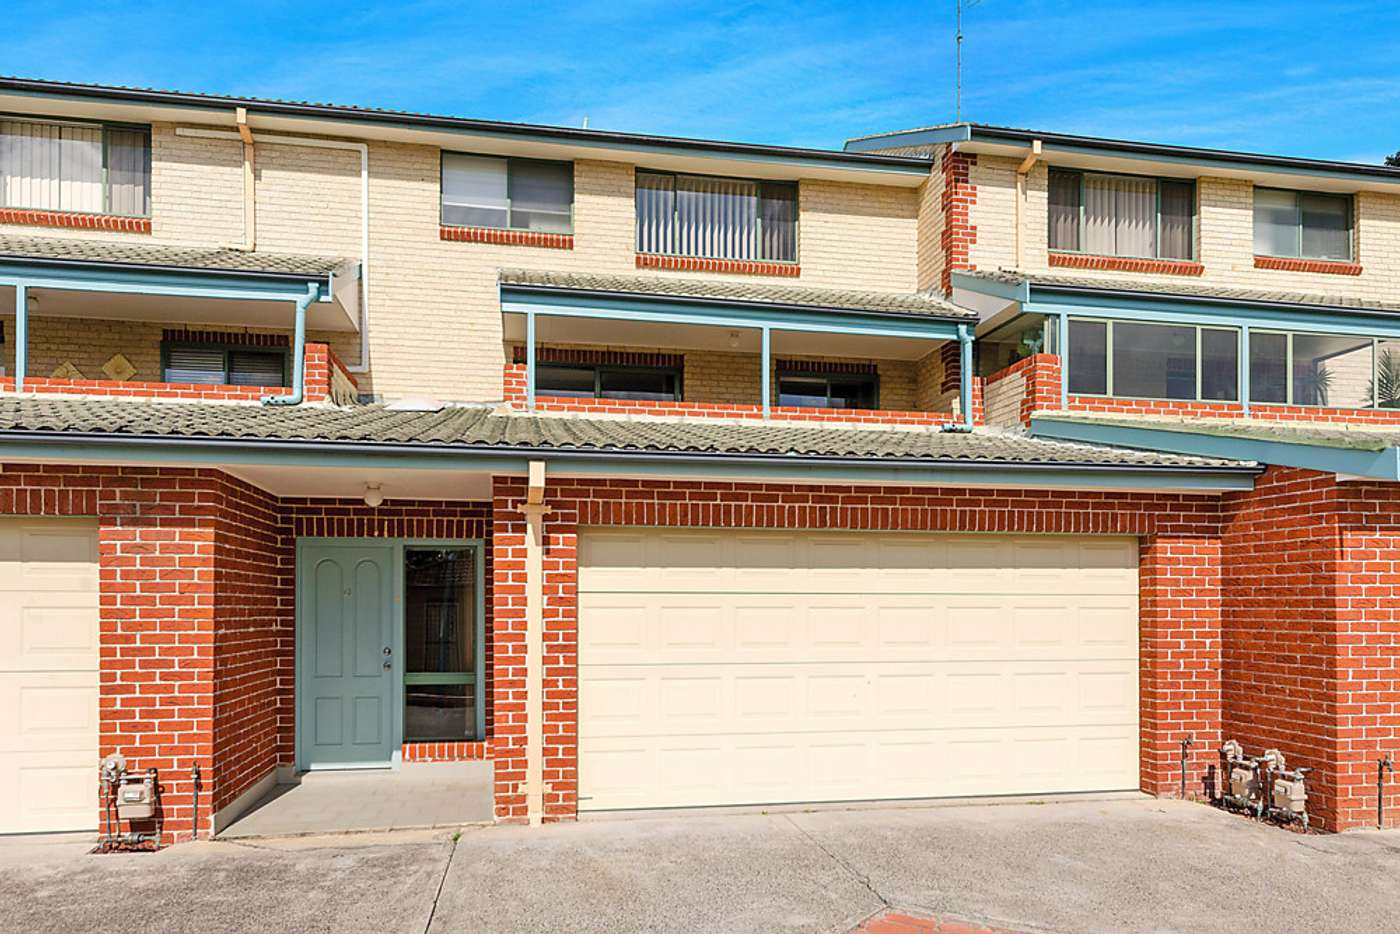 Main view of Homely townhouse listing, 17/11-13 Watkins Road, Baulkham Hills NSW 2153